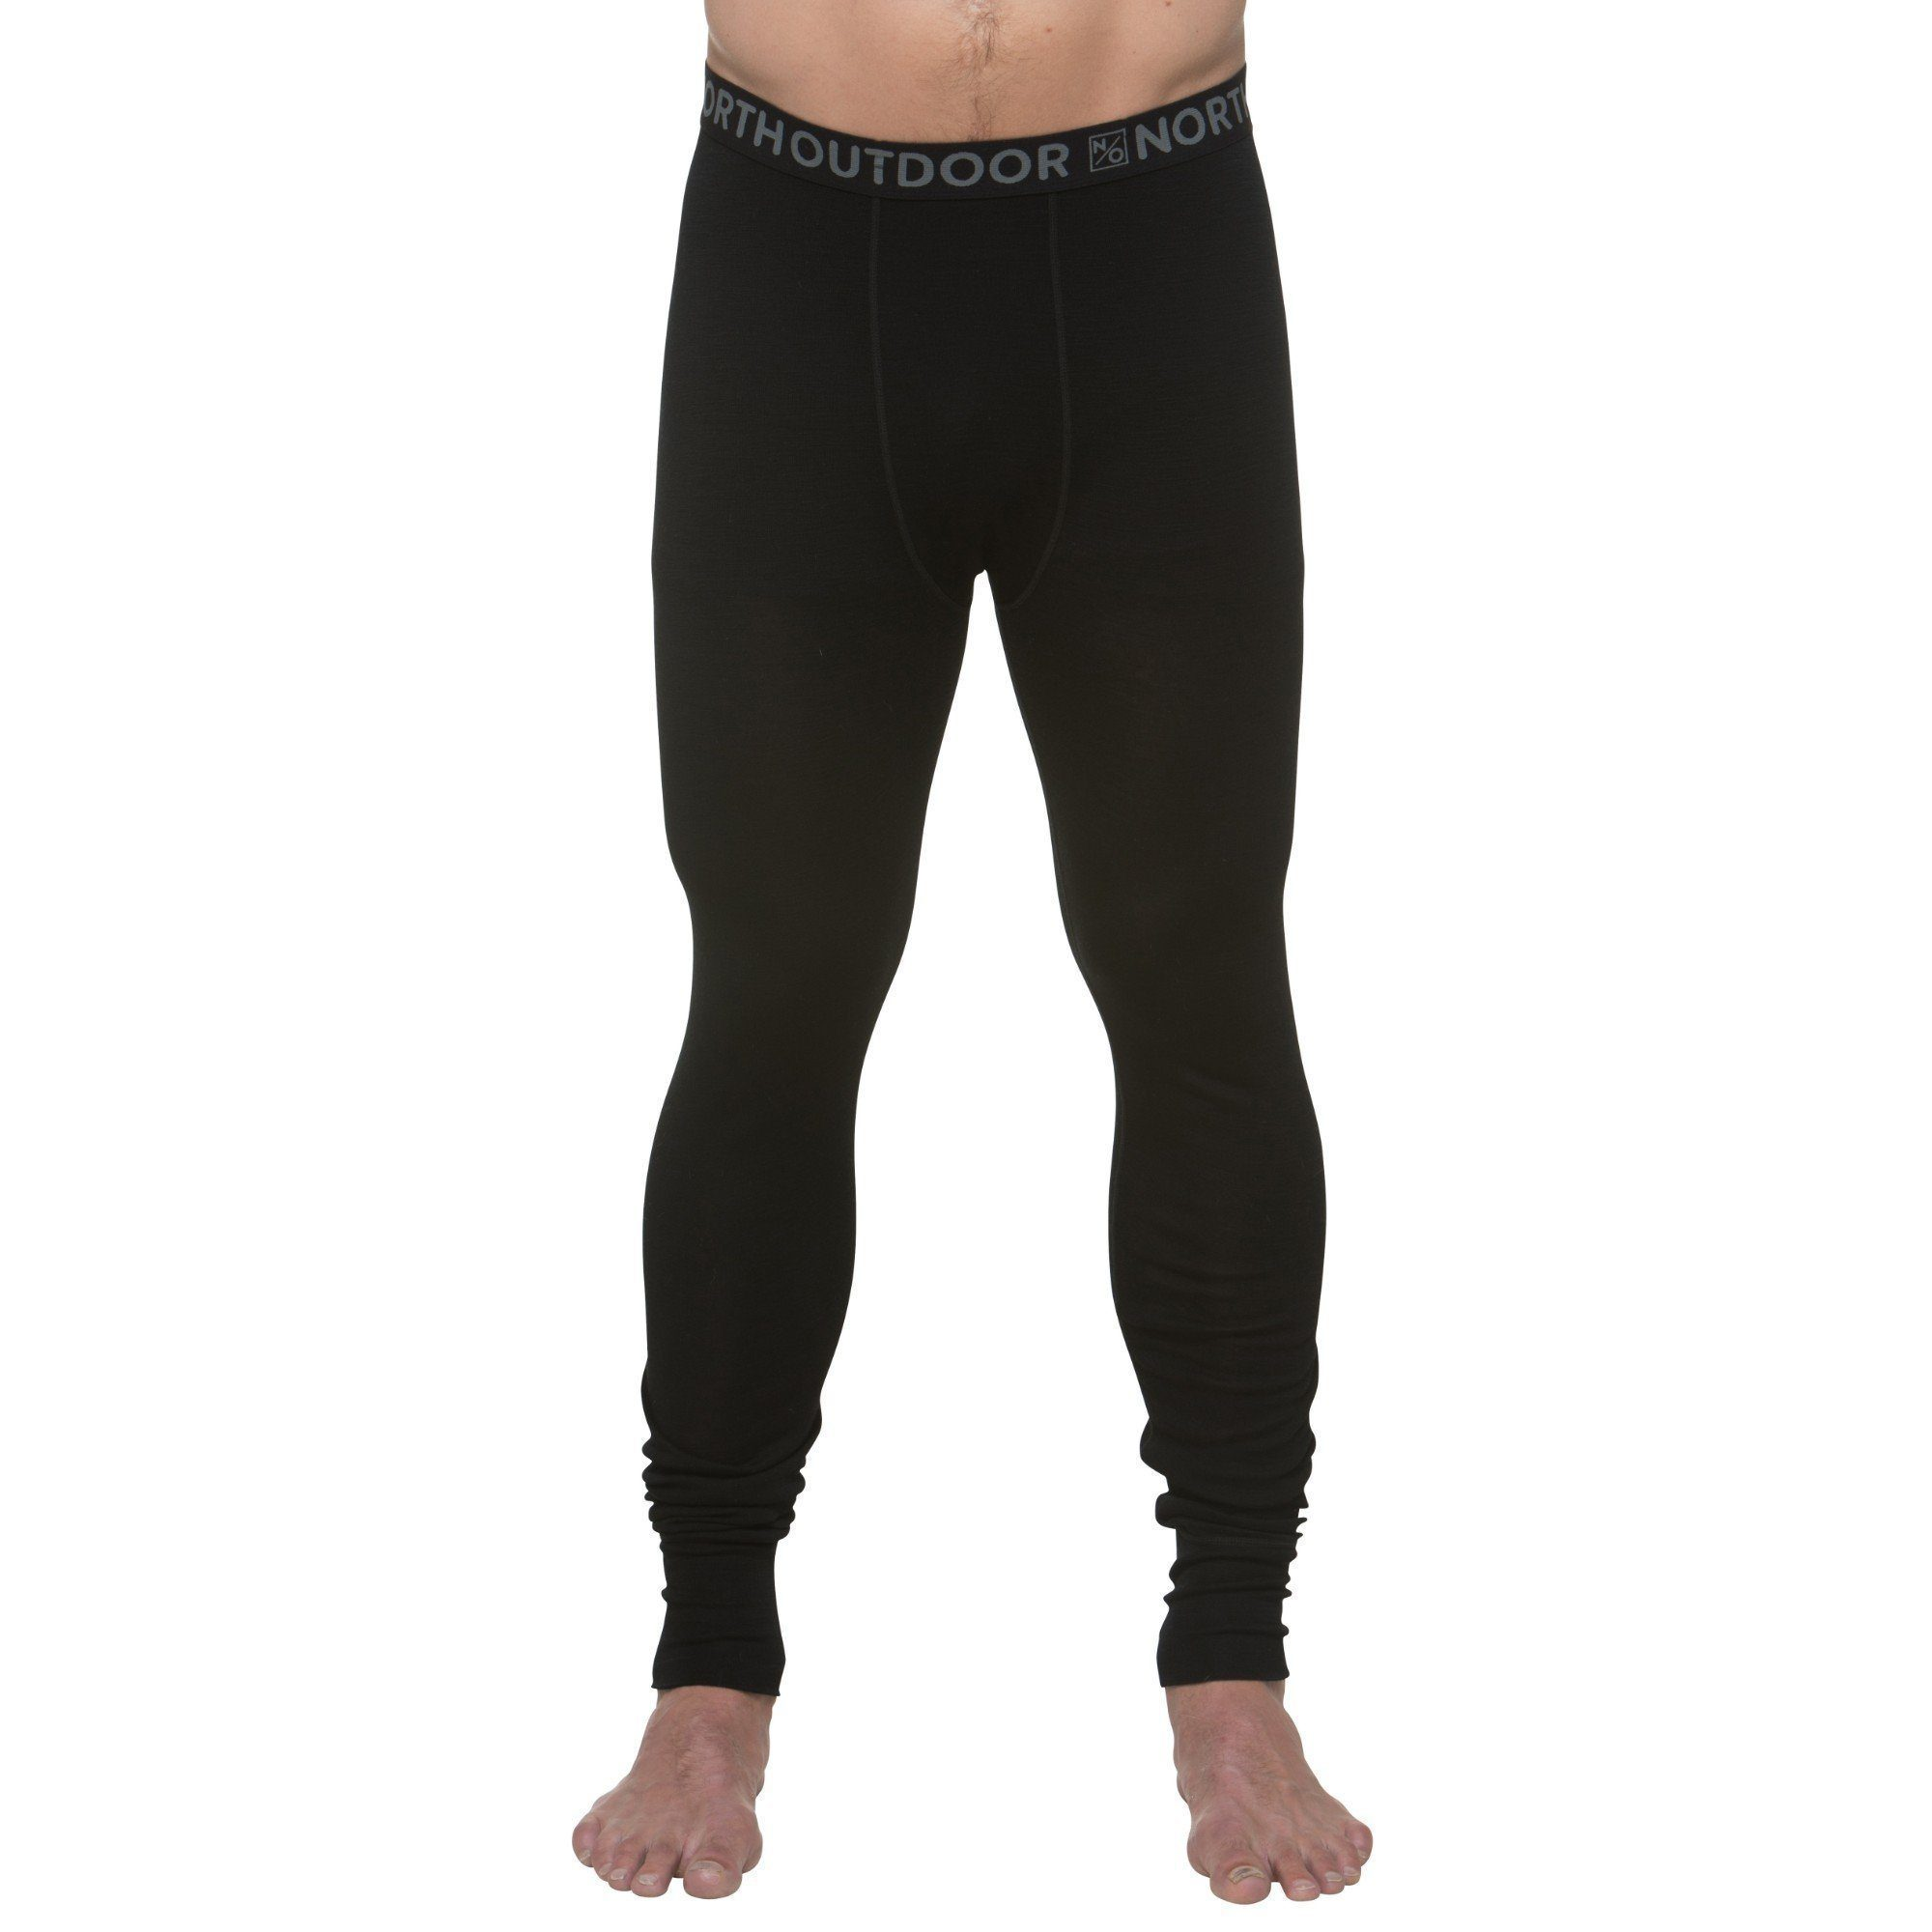 North Outdoor - Men's Baselayer Pants - 100 % Merino Wool - ACTIVE 210 - Weekendbee - sustainable sportswear